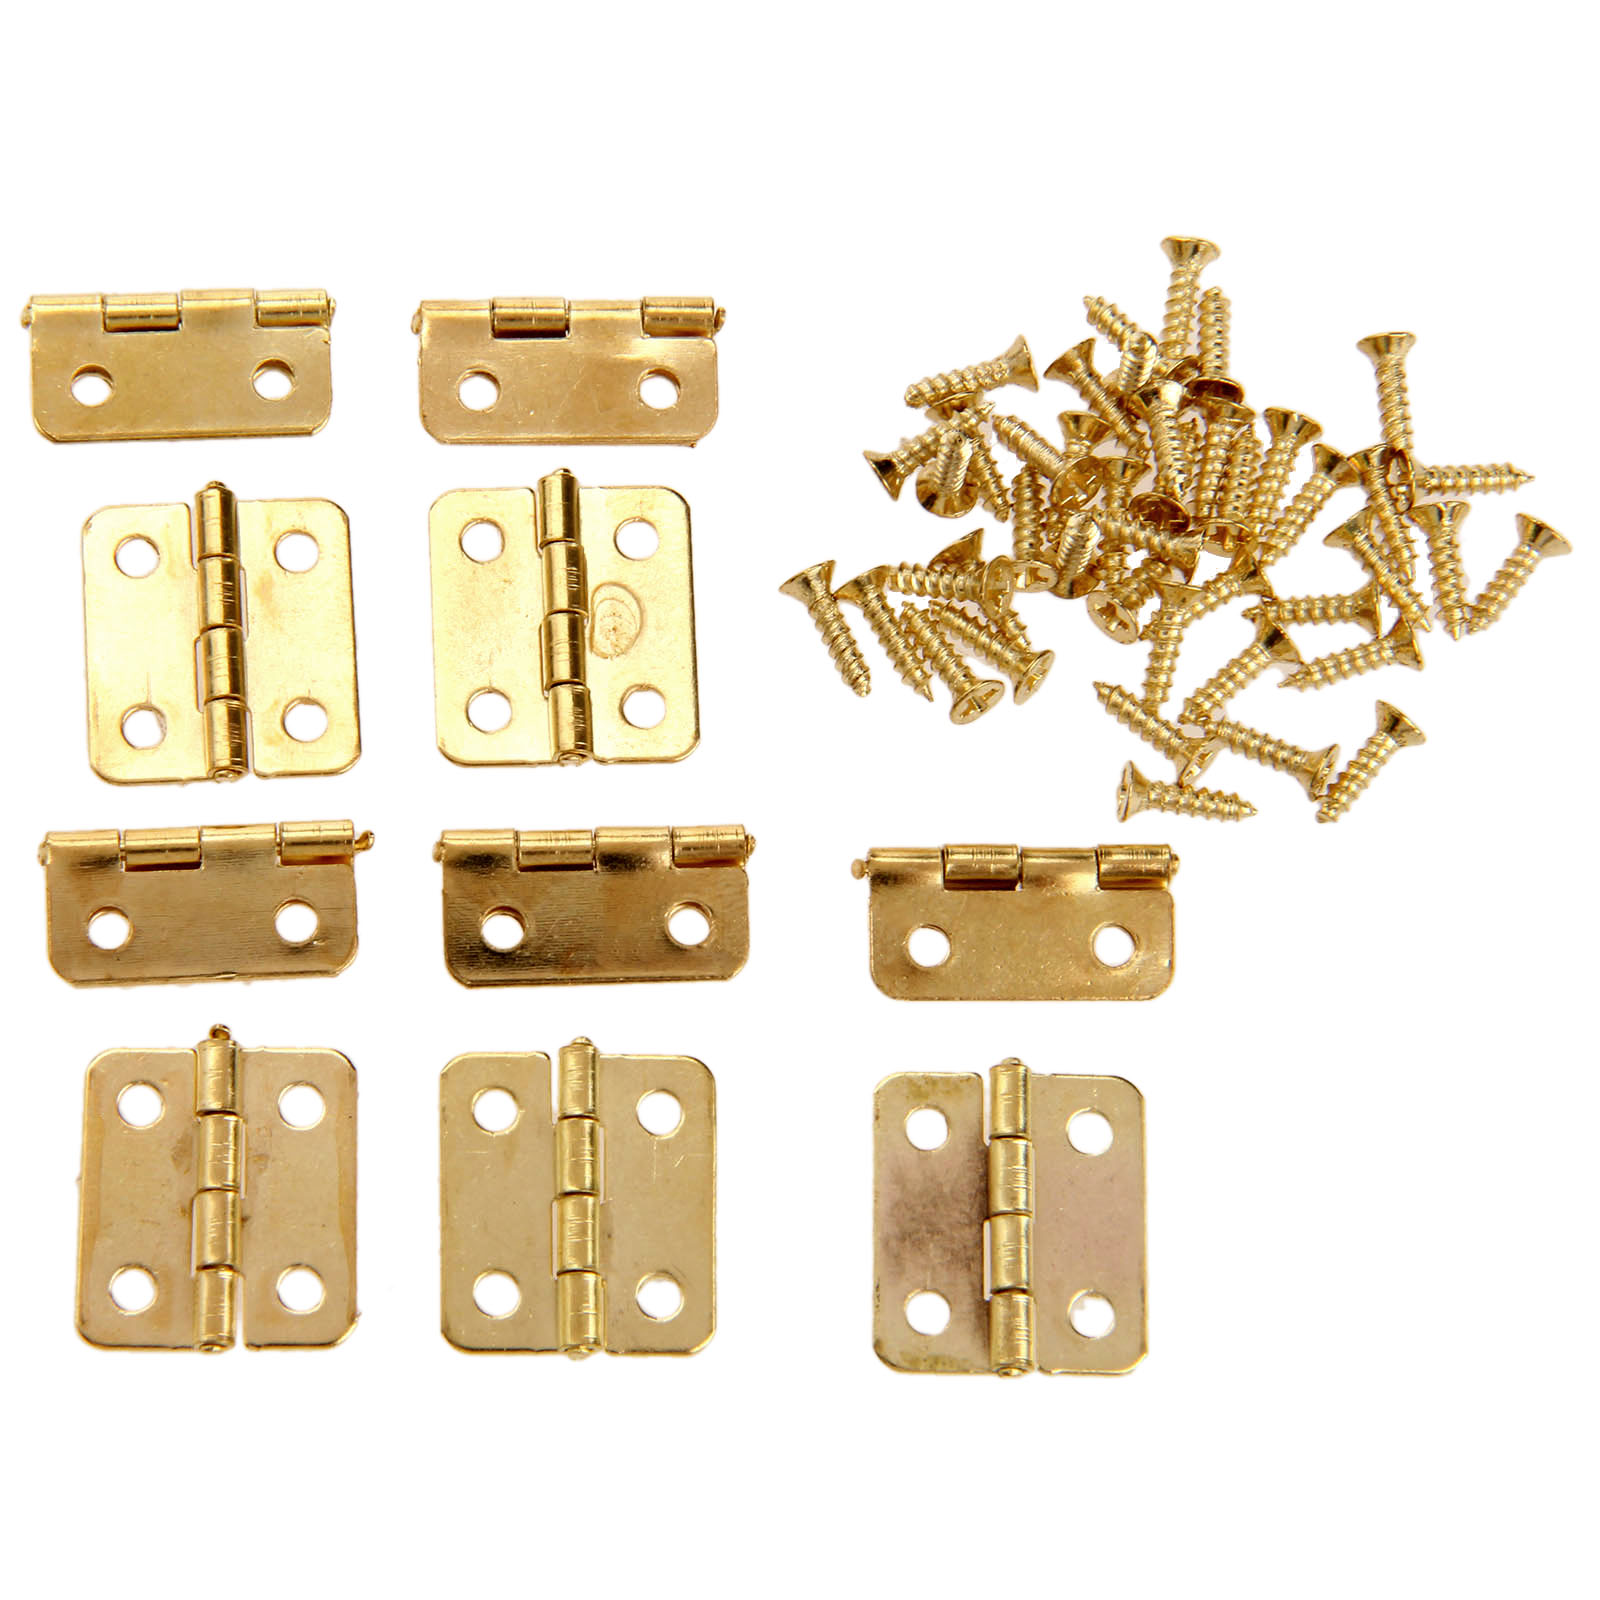 Http Www Aliexpress Com Item 10pcs Kitchen Cabinet Door Hinges Furniture Accessories 4 Holes Gold Drawer Hinges For Jewelry Boxes Furniture 32749605466 Html